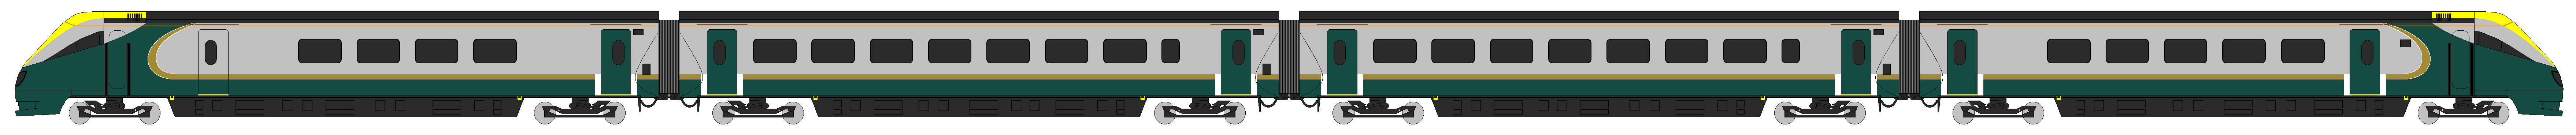 File Class 222 First Hull Trains Diagram Png